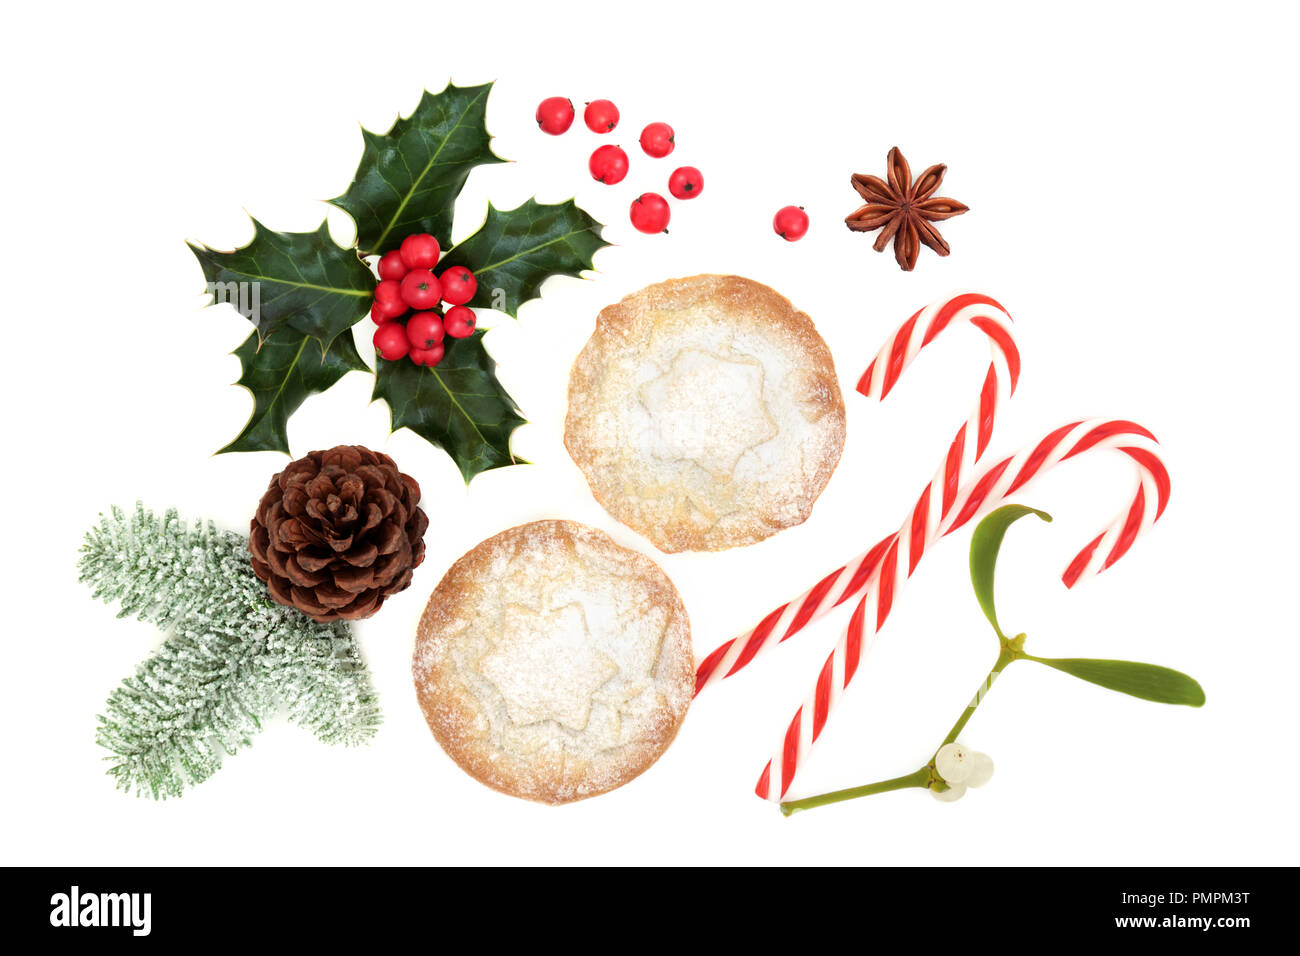 Christmas symbols with mince pie tarts, winter flora of holly, snow covered fir, pine cone, candy canes and star anise on white background. Top view. - Stock Image